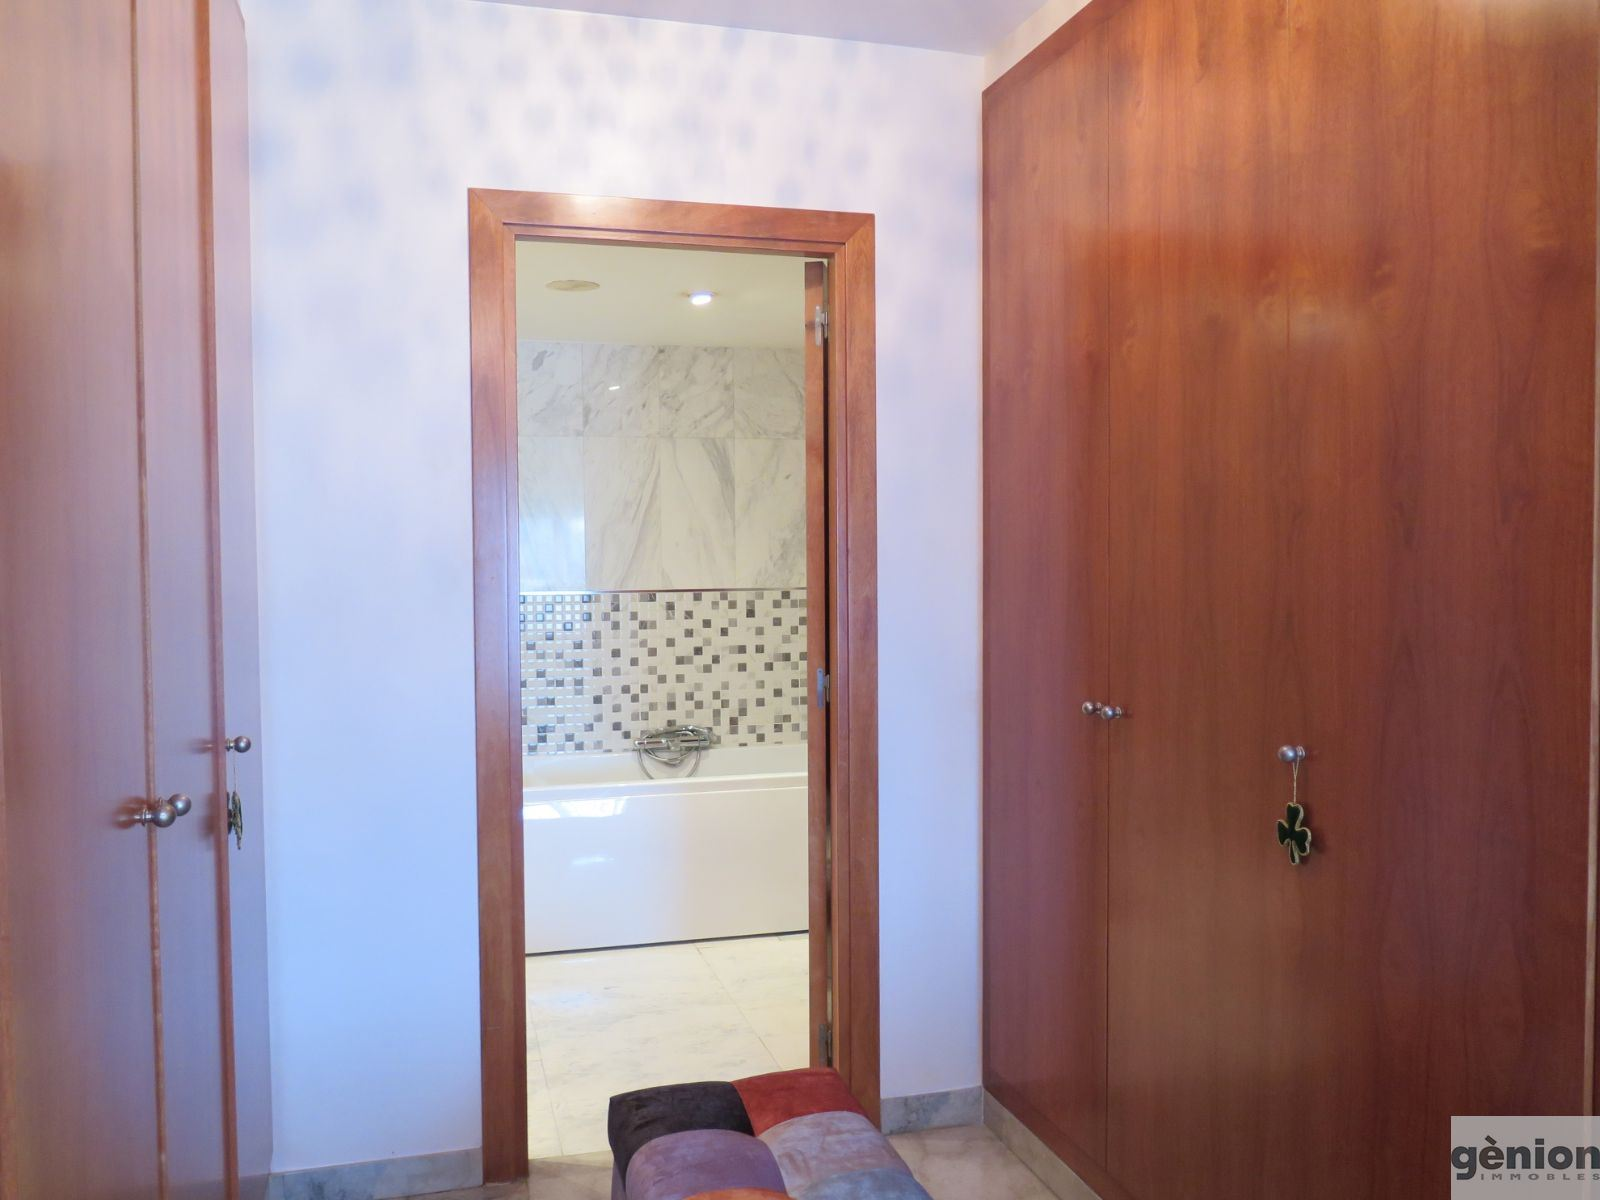 4 ROOMS HIGH FLOOR APARTMENT IN GIRONA. NEXT TO THE CENTER, WITH PARKING INCLUDED